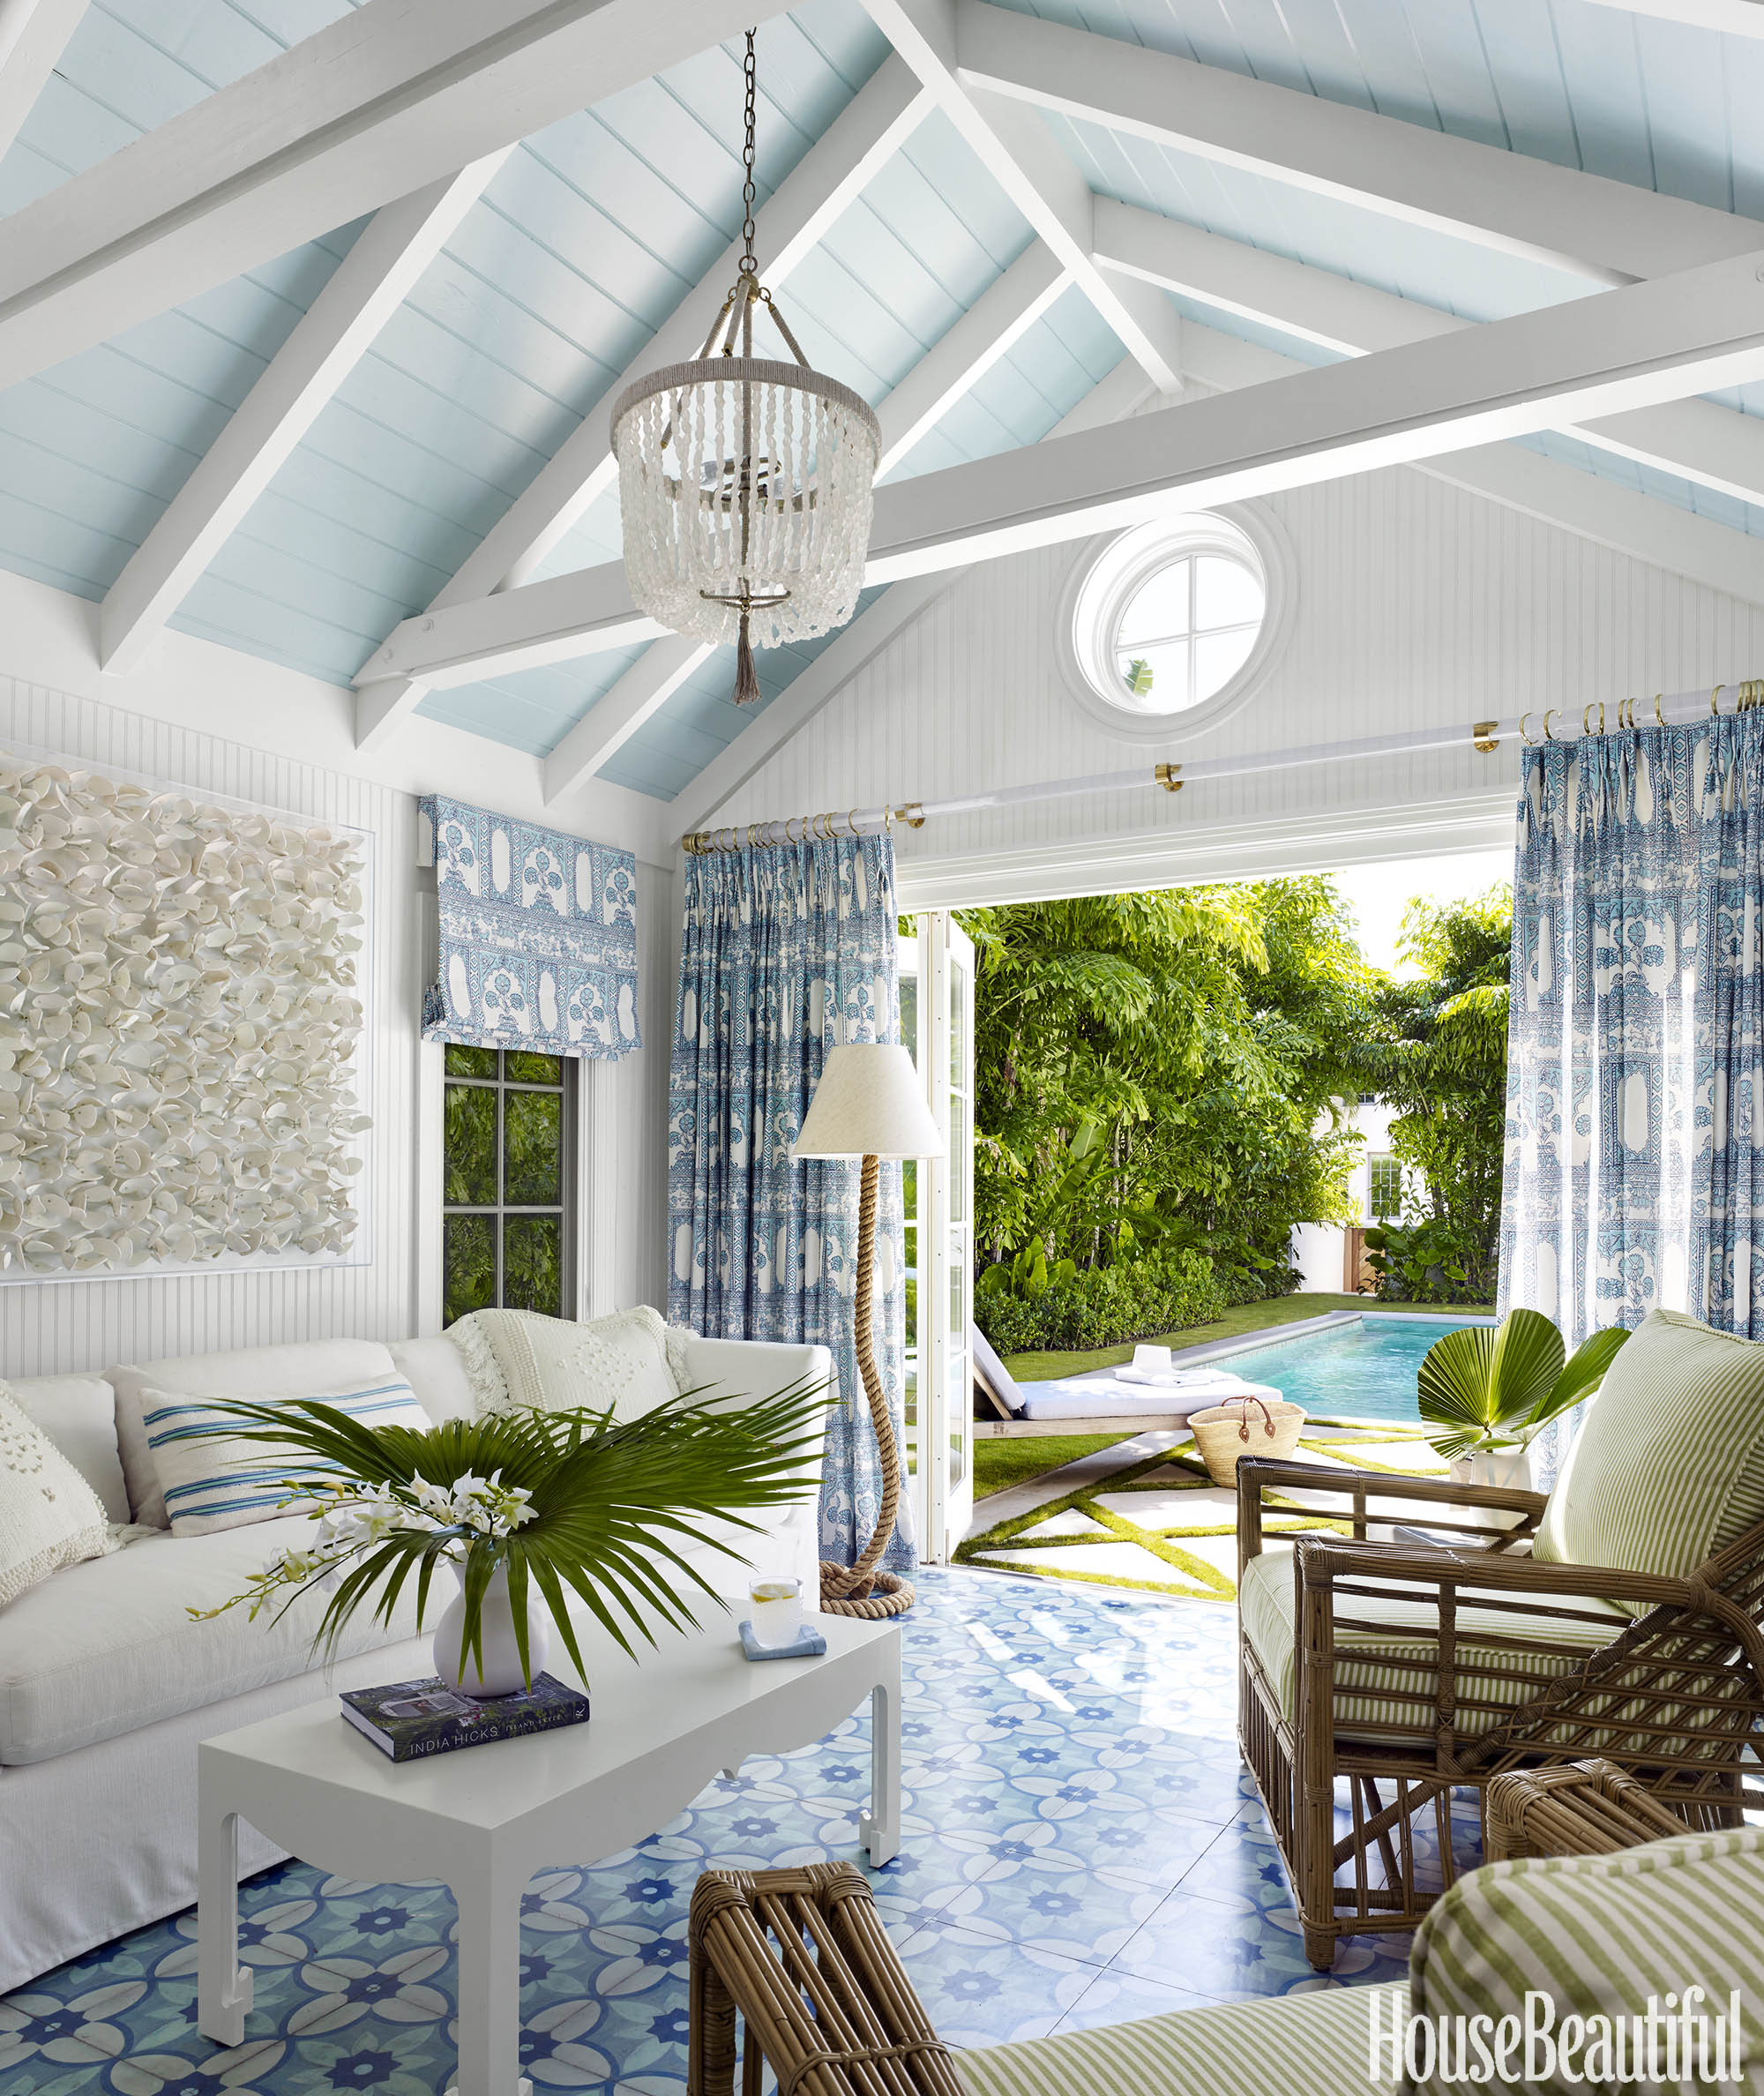 Spotlight On A Laid-Back Lush Palm Beach House By Lindsey Lane Design